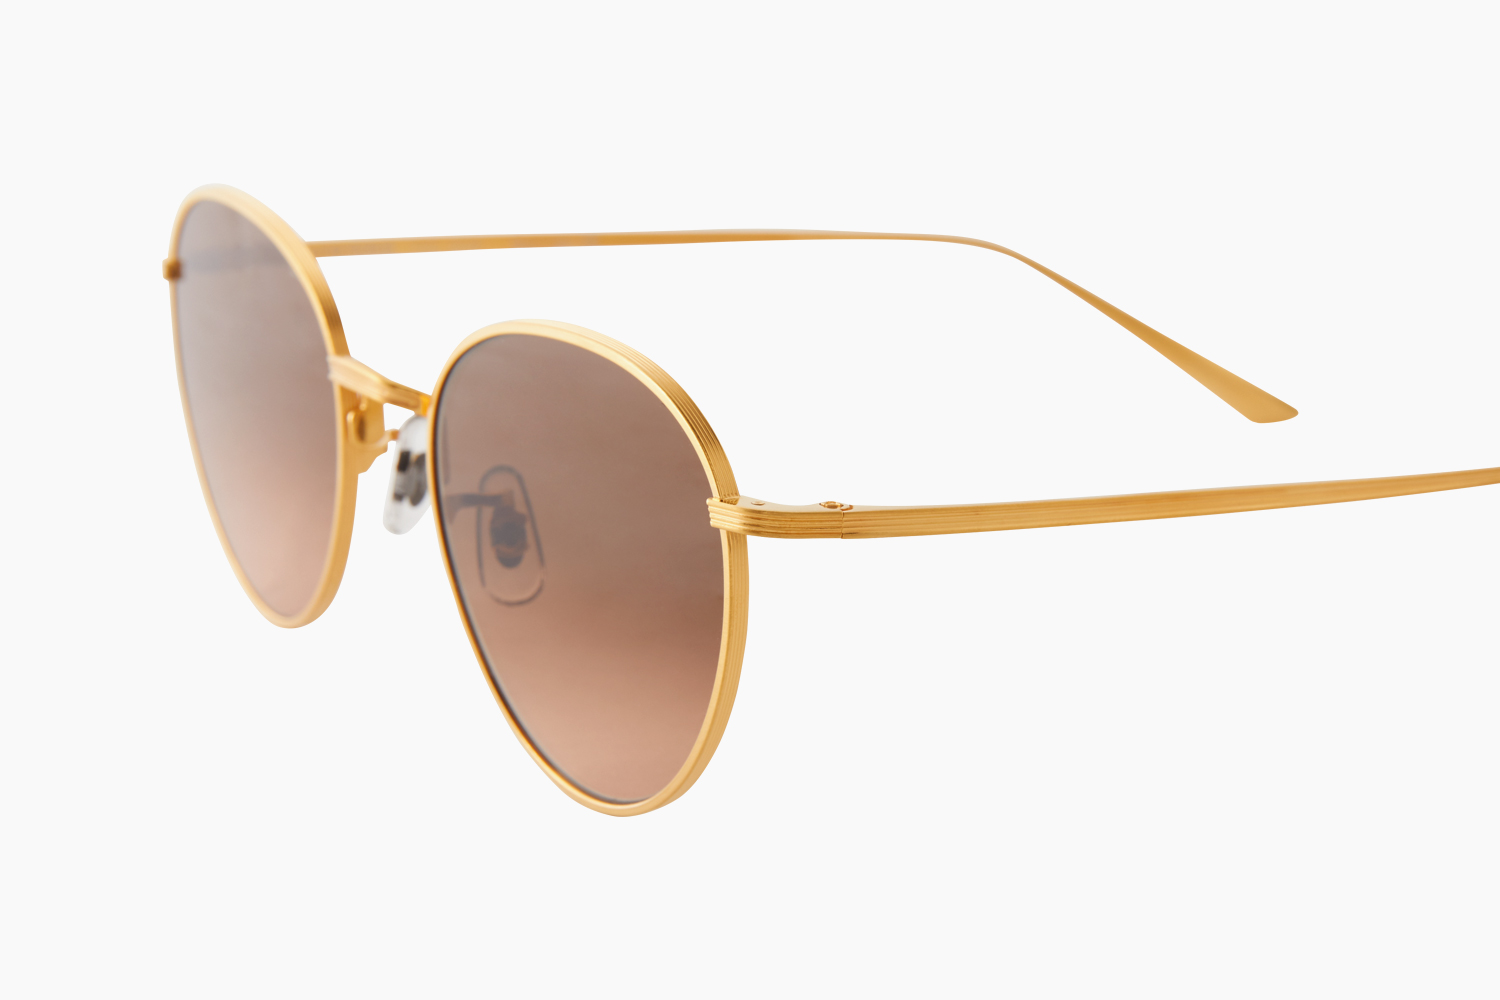 OLIVER PEOPLES THE ROW|BROWNSTONE2 - Yellow Gold|SUNGLASSES COLLECTION - 21SS